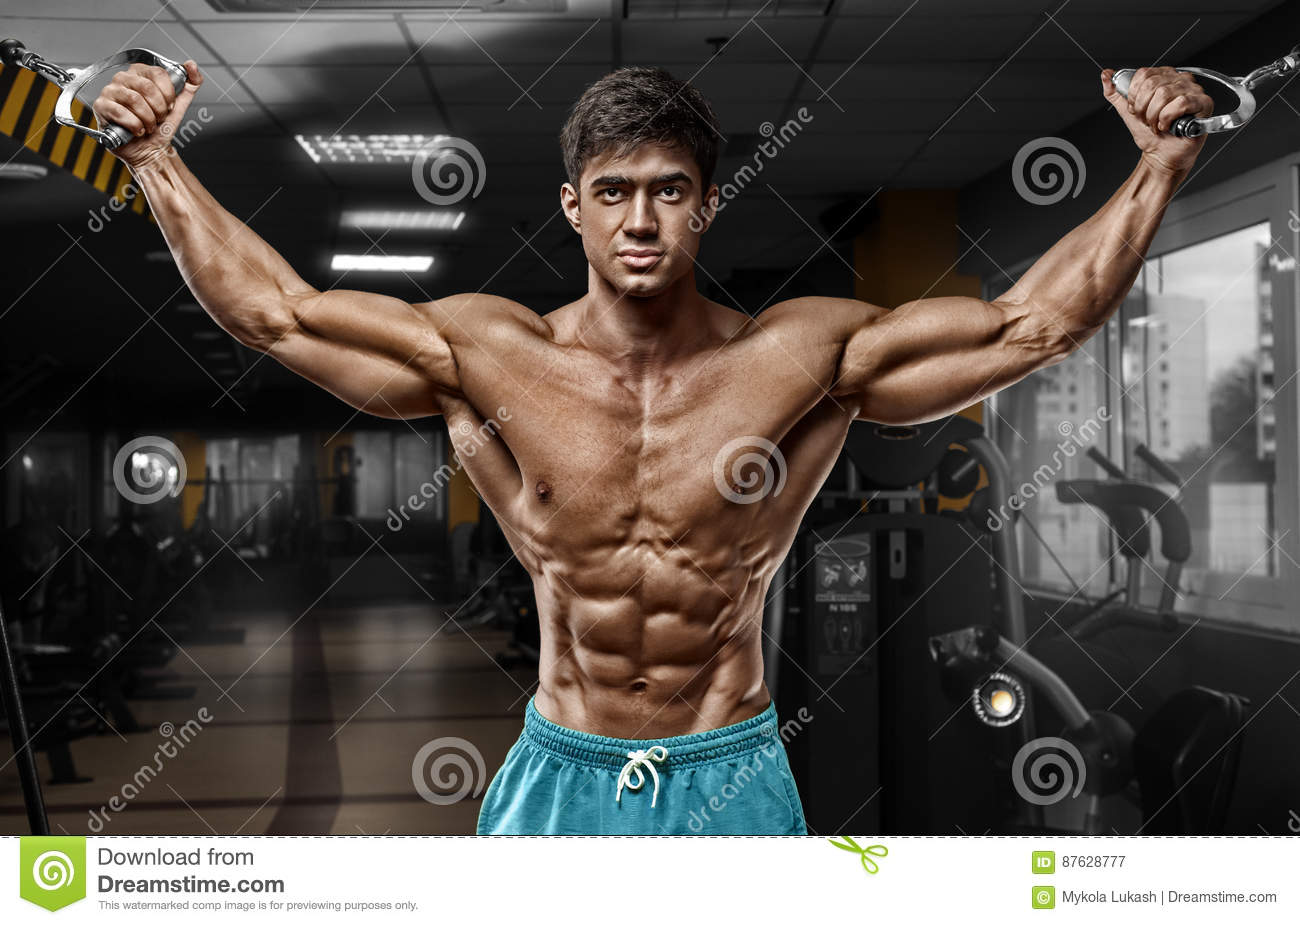 Download Muscular Man Working Out In Gym Doing Exercises, Strong Male Naked Torso Abs Stock Image - Image of blue, strong: 87628777